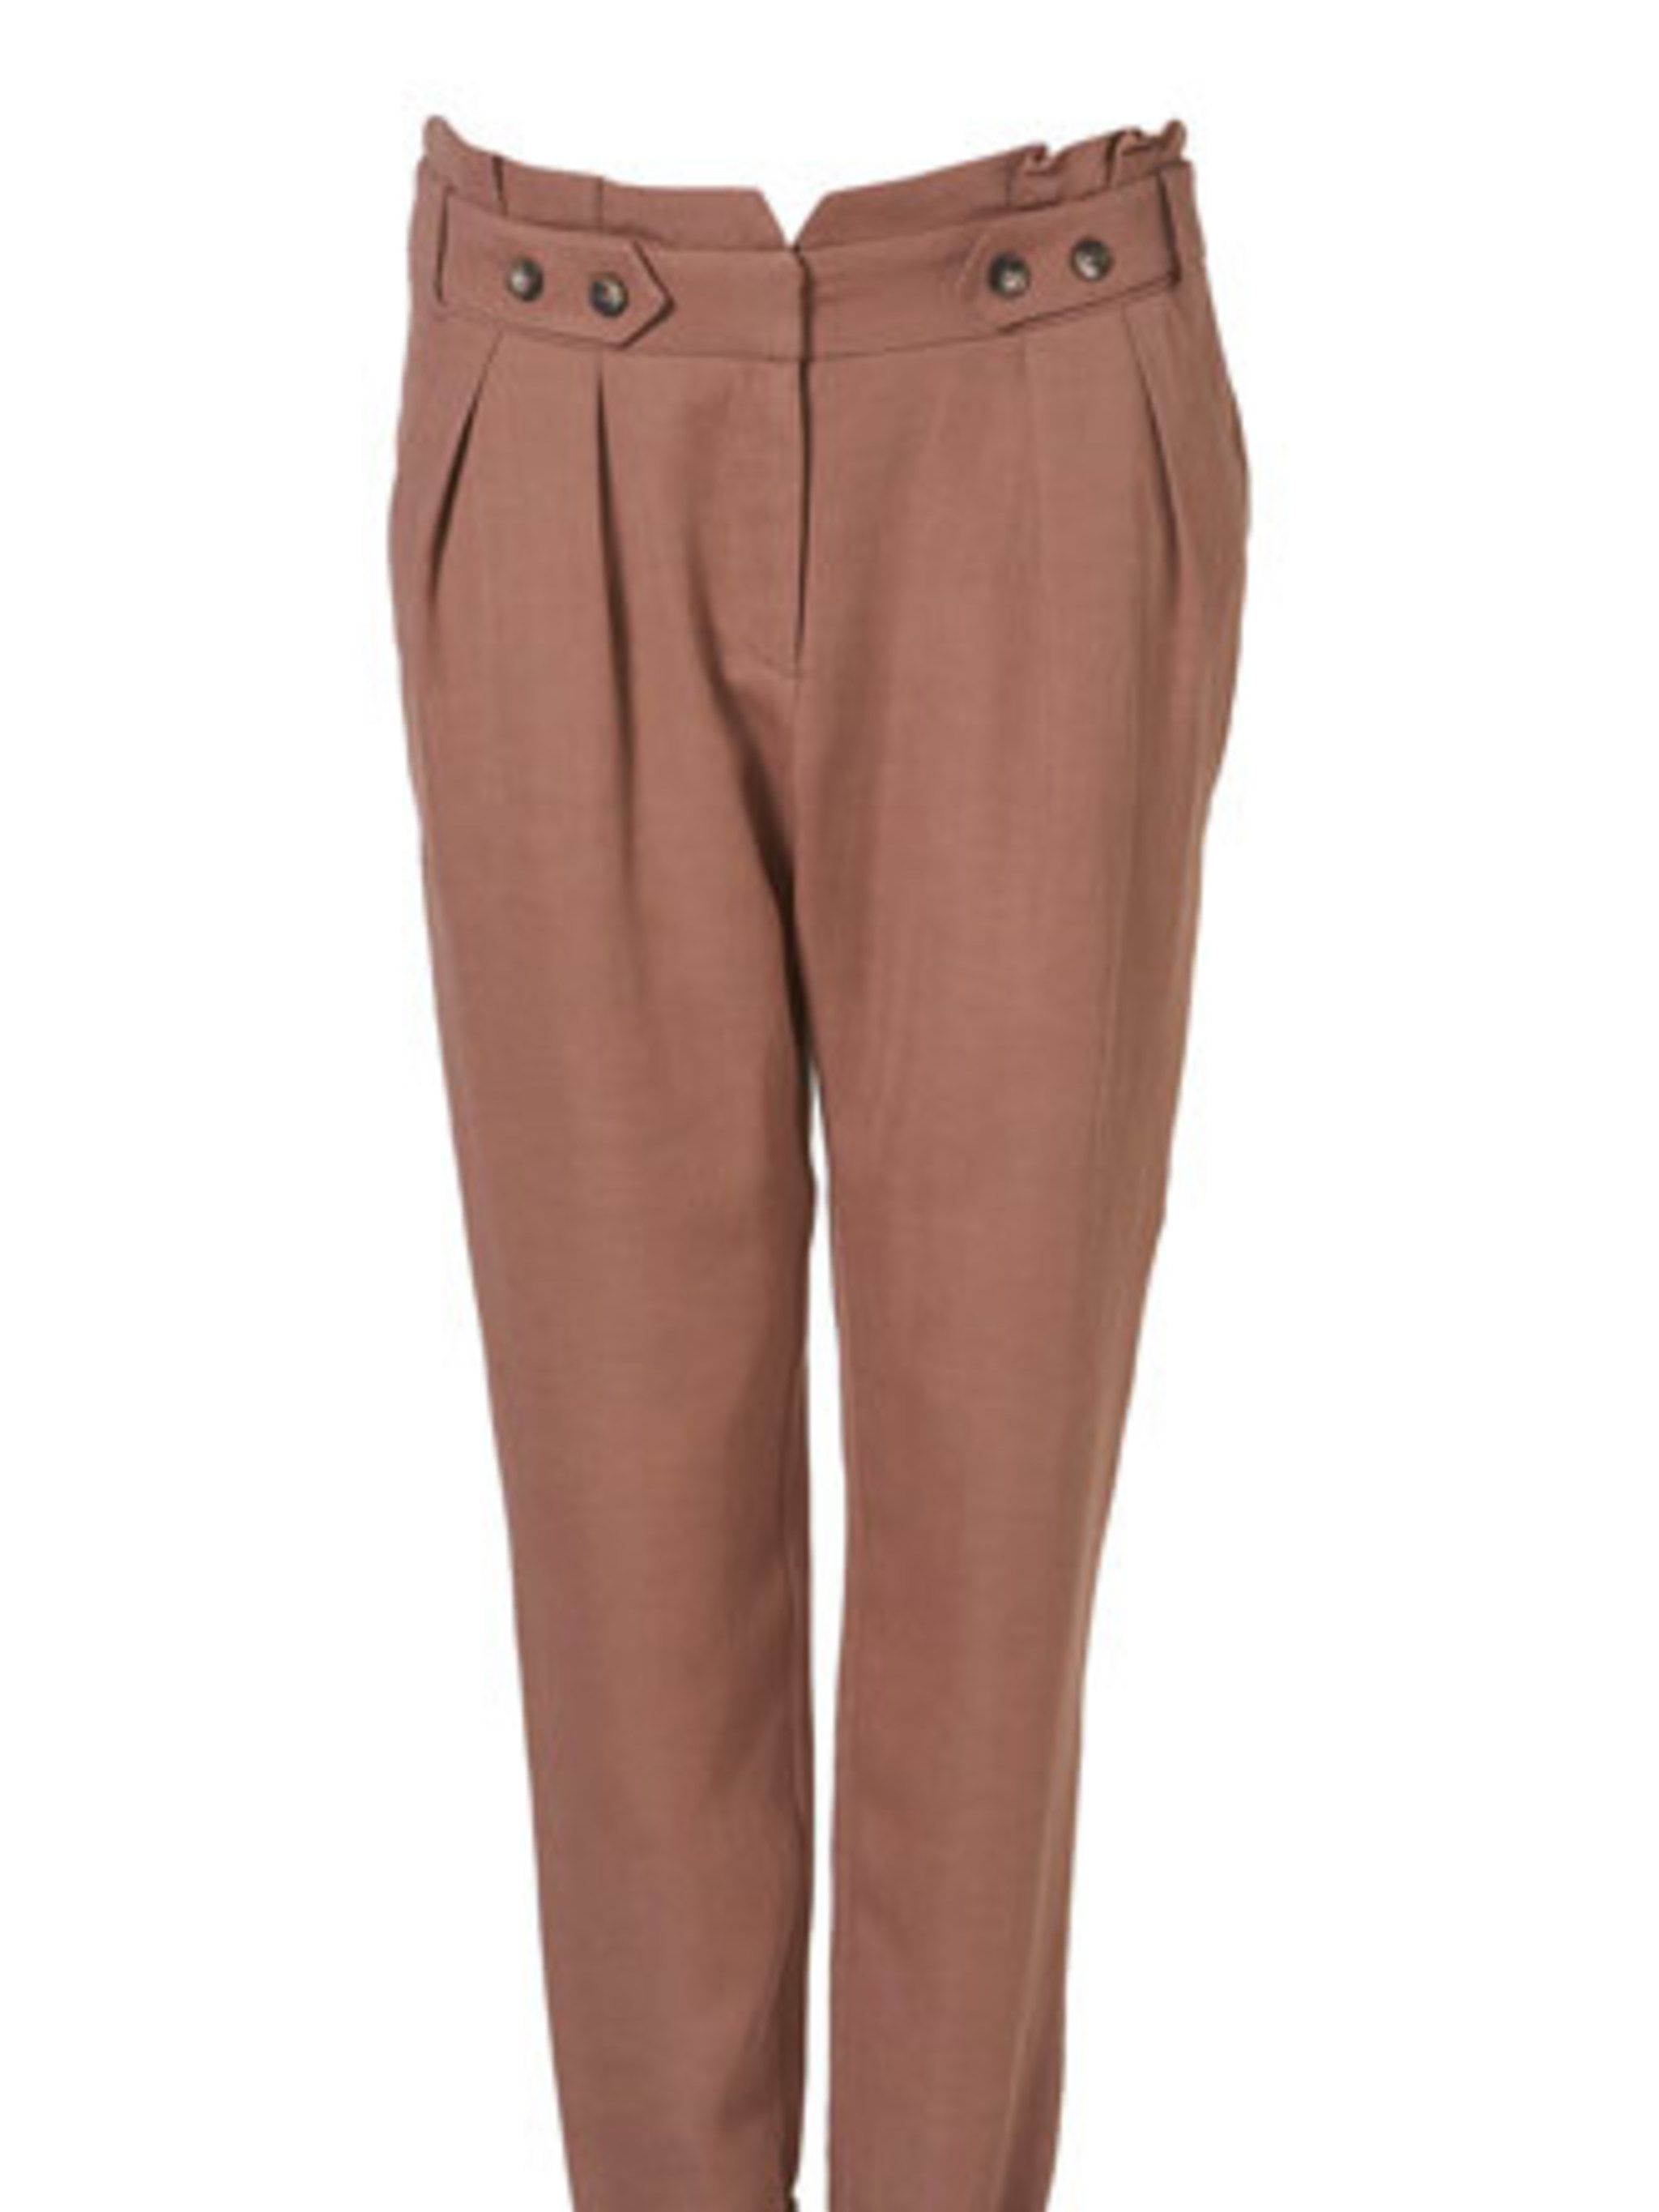 "<p>Smart trousers will be your new best friend come next season, usurping the skirt and dress as your top item. This brick coloured pair is a welcome change from black, navy and grey in the office.</p><p><a href=""http://www.topshop.com/webapp/wcs/stores/s"